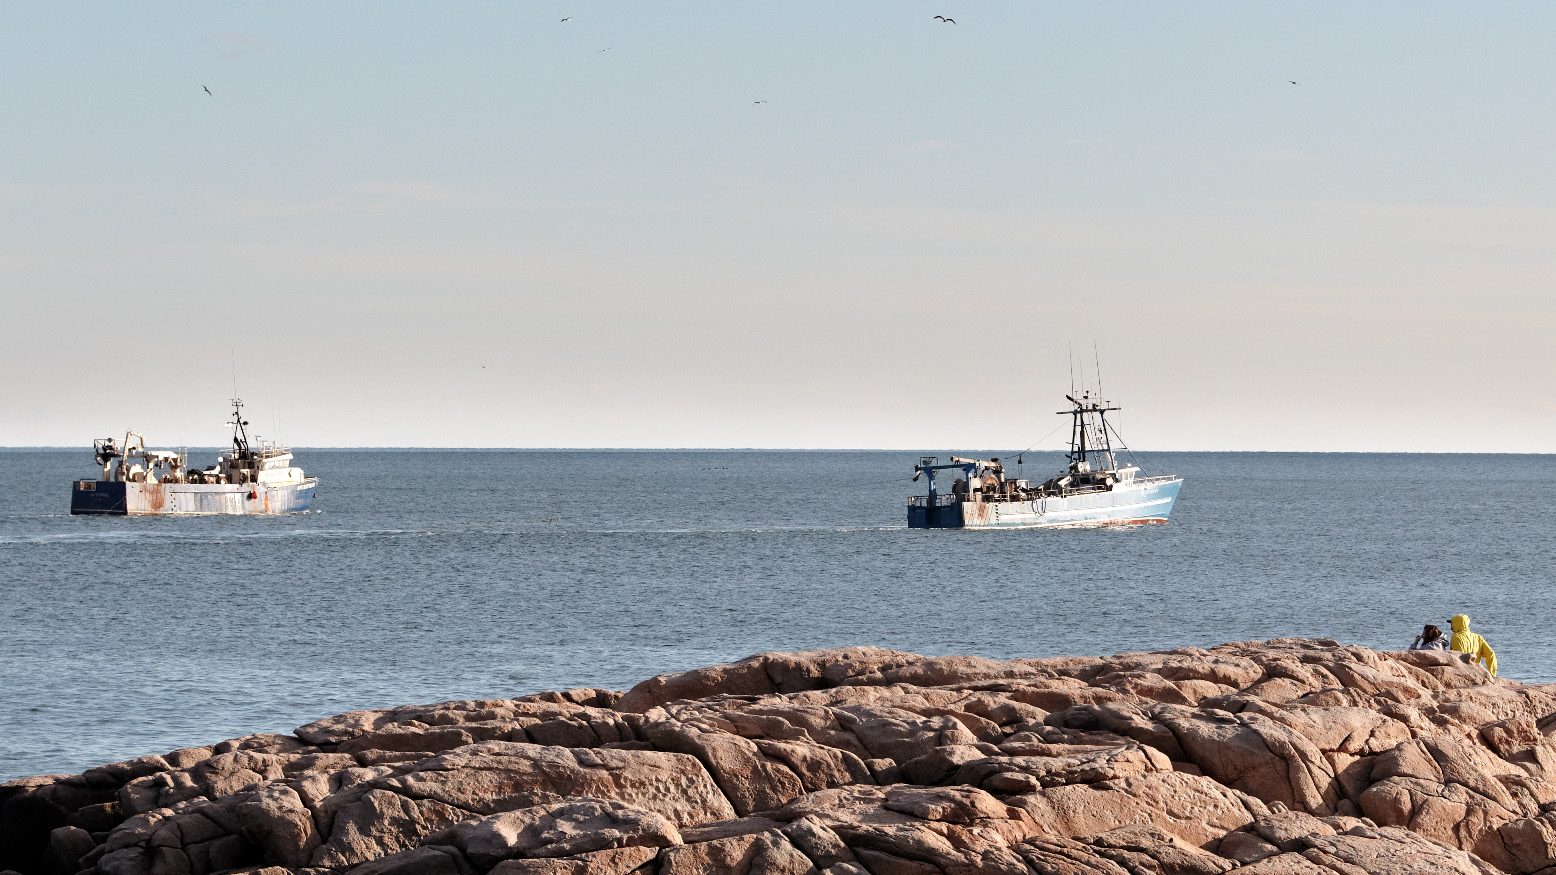 With Atlantic Herring Population Crashing, Managers Should Adopt